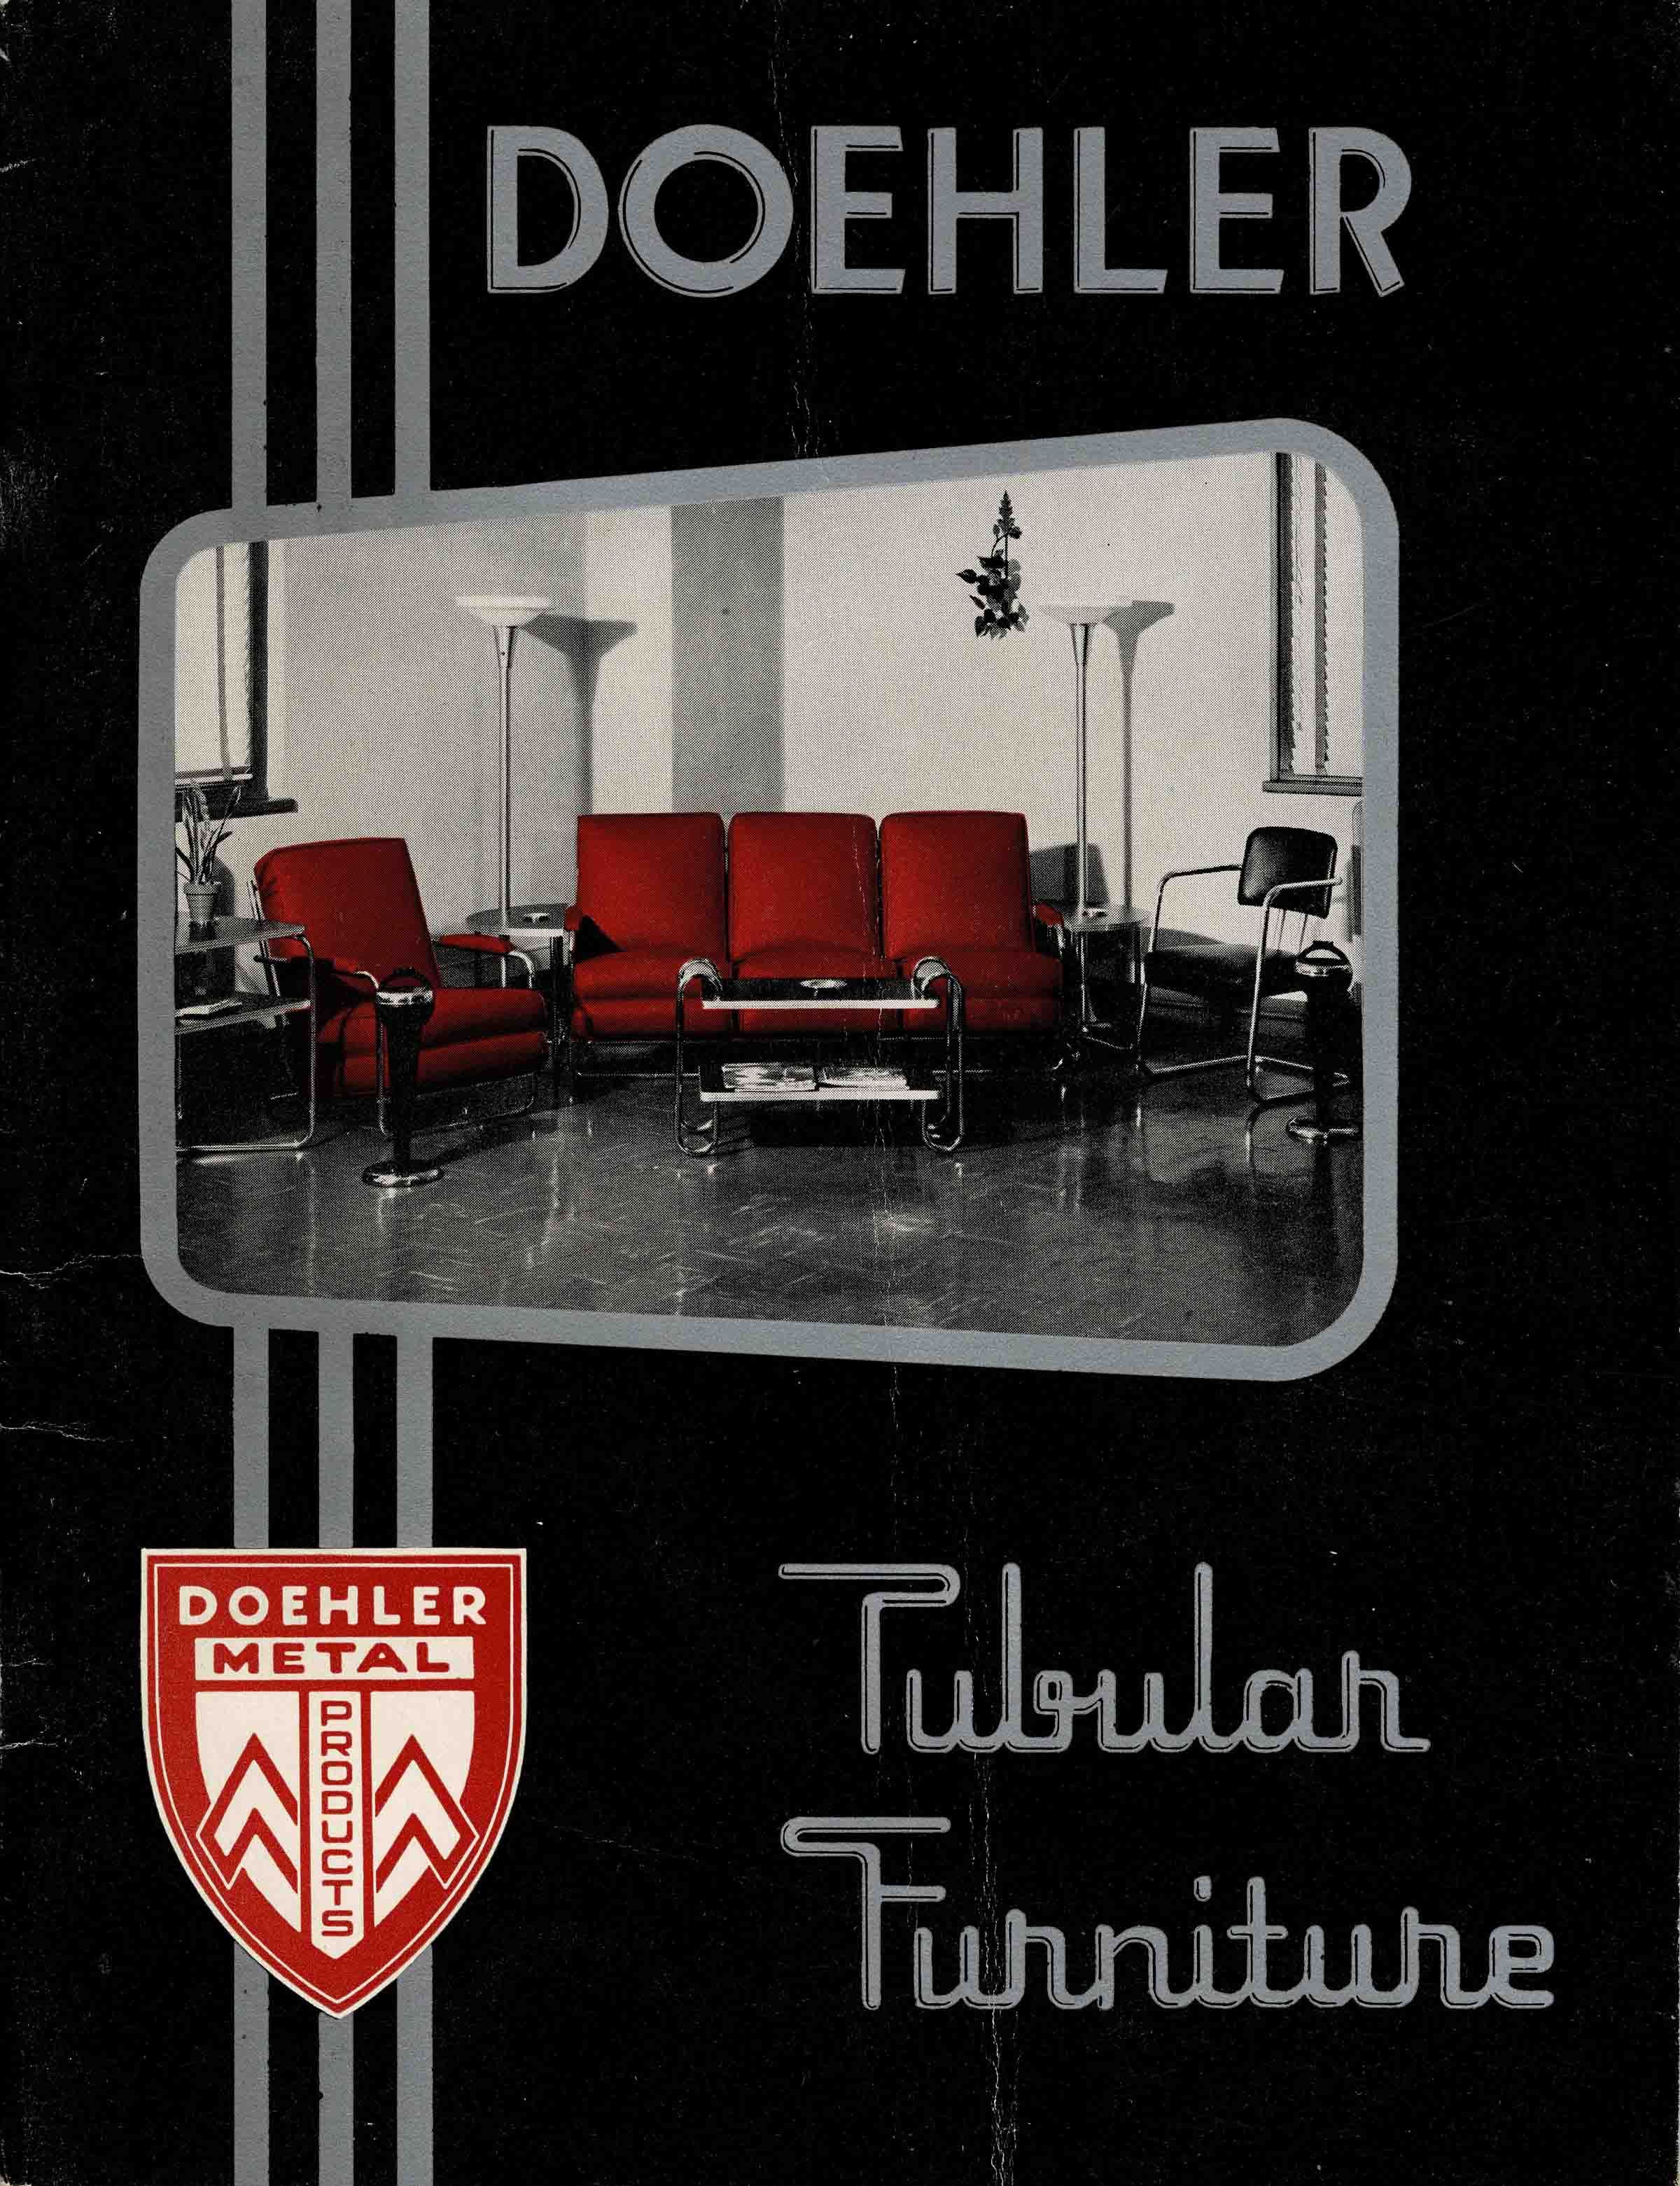 Doehler Metal Products Corporation No 94 1948 By Doehler Metal Products Corporation 1948